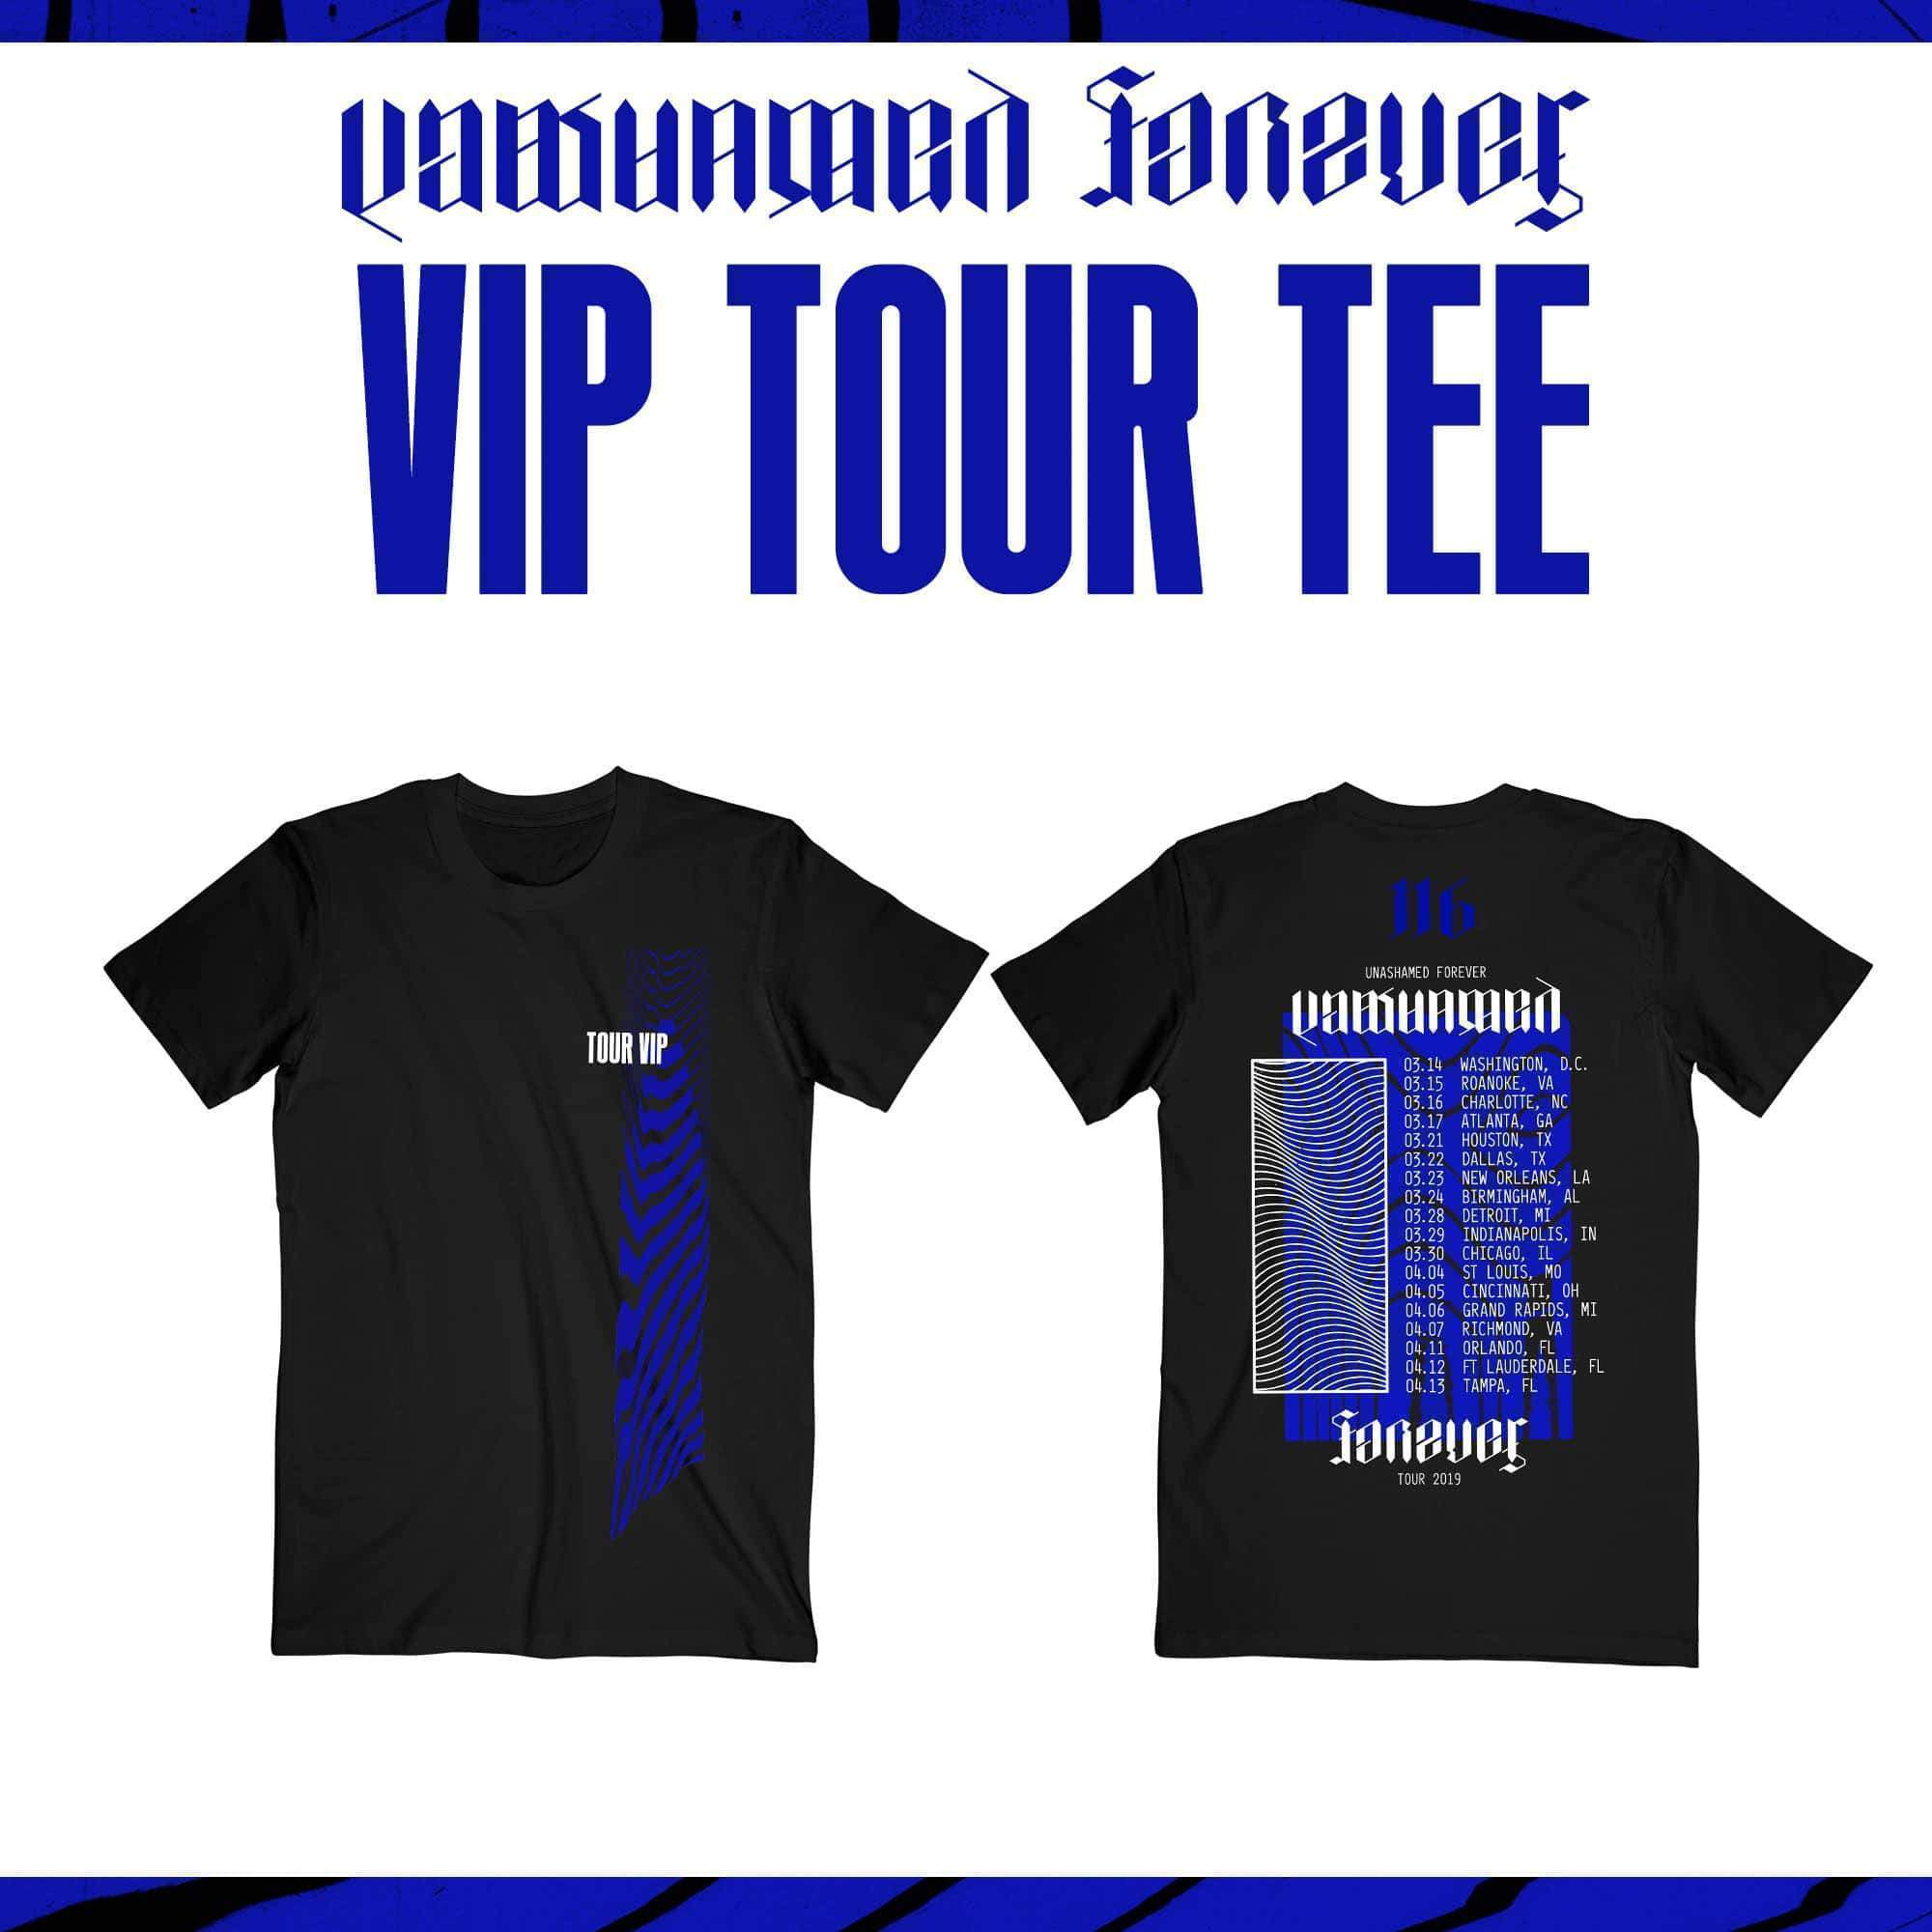 Unashamed Forever Tour - DIAMOND VIP - St Louis, MO - 04/04